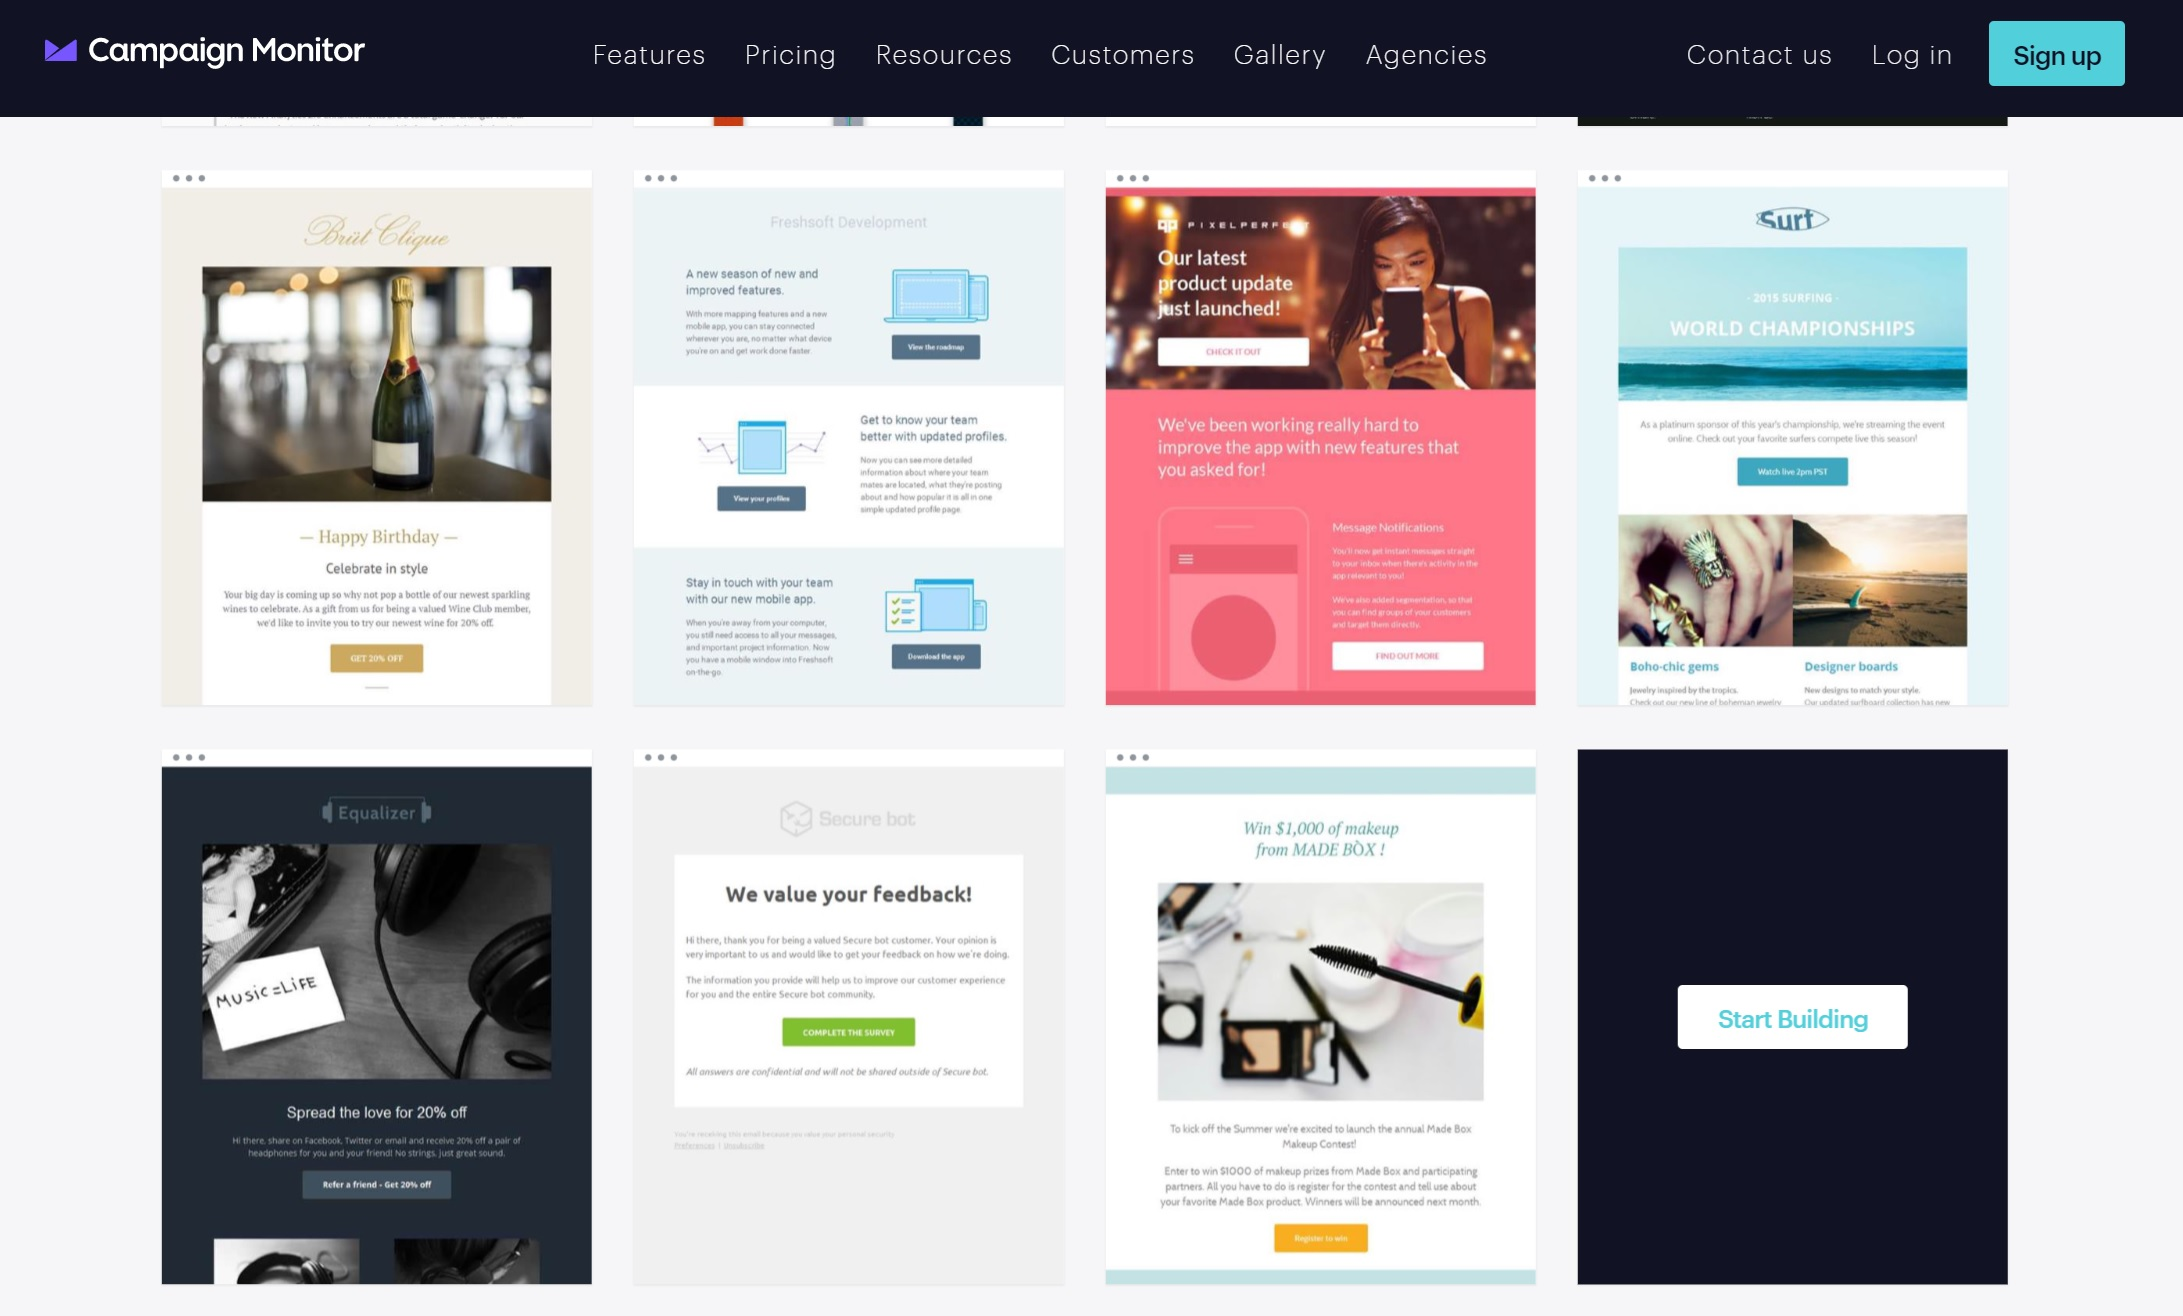 At Campaign Monitor, we have a free email template builder to help marketers design stunning HTML email templates in under a minute.